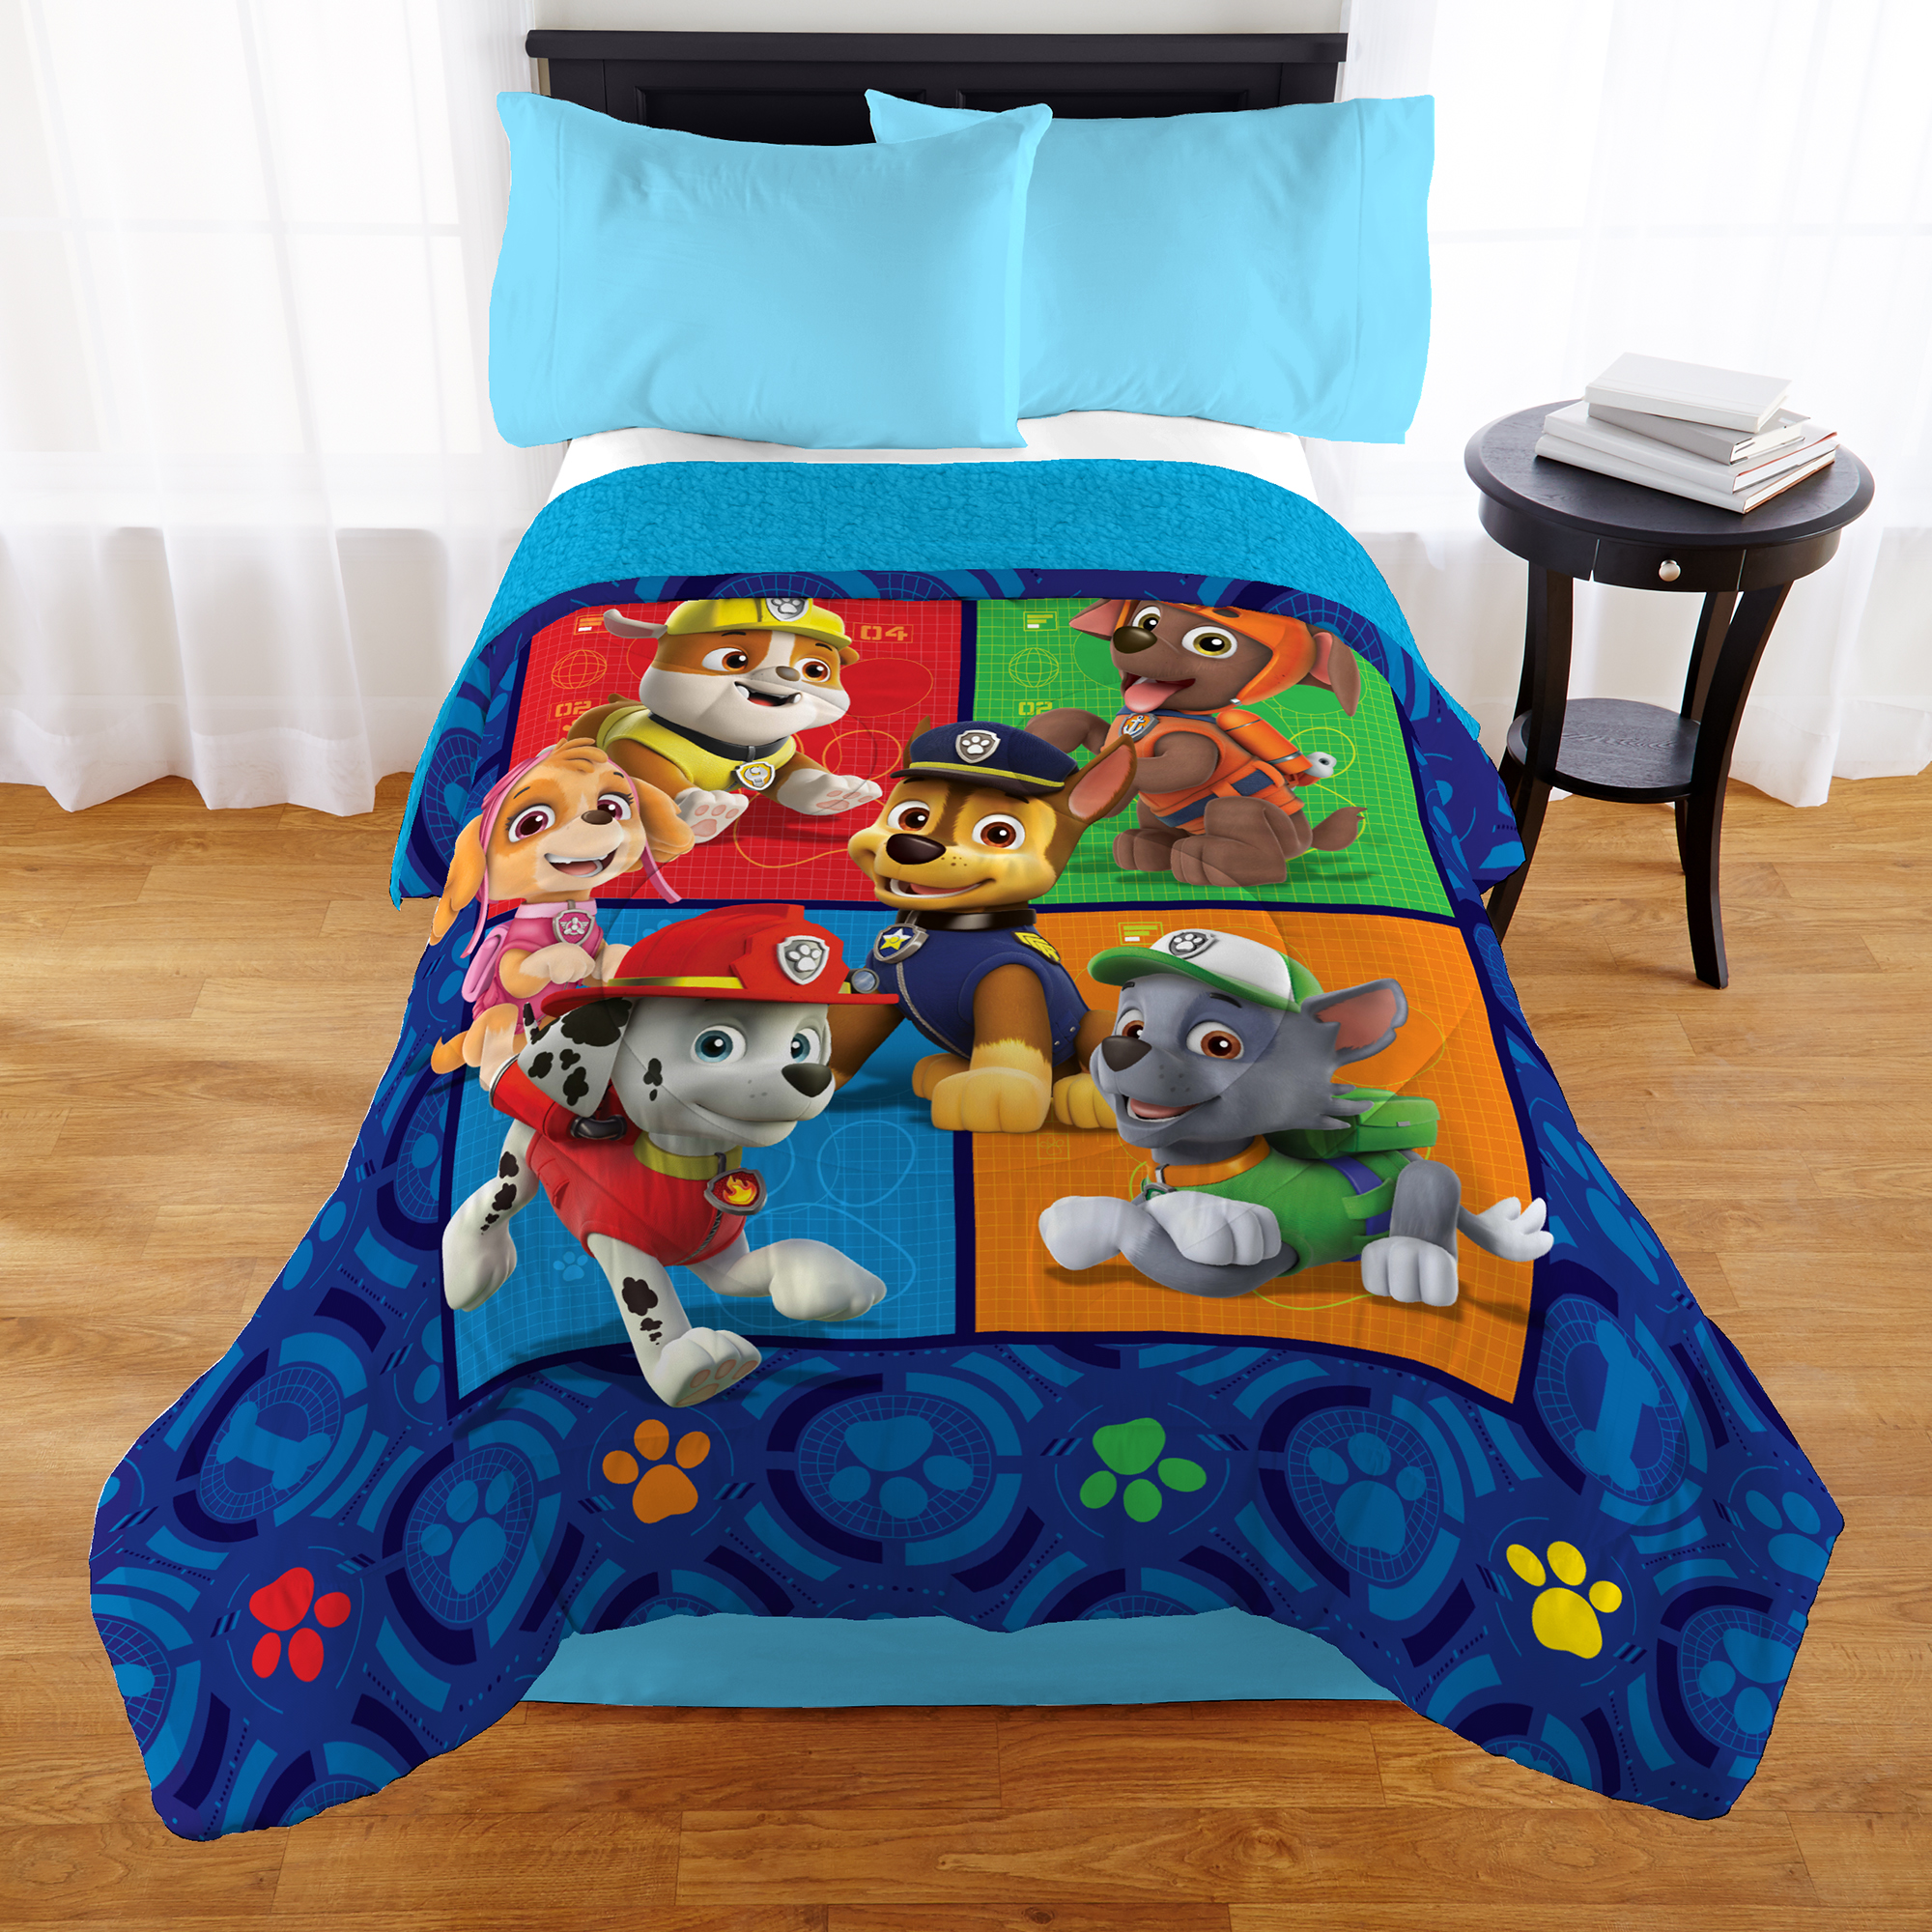 Paw Patrol 'Find Your Wag' Kids Bedding Sherpa Comforter, Twin Full by Franco Manufacturing